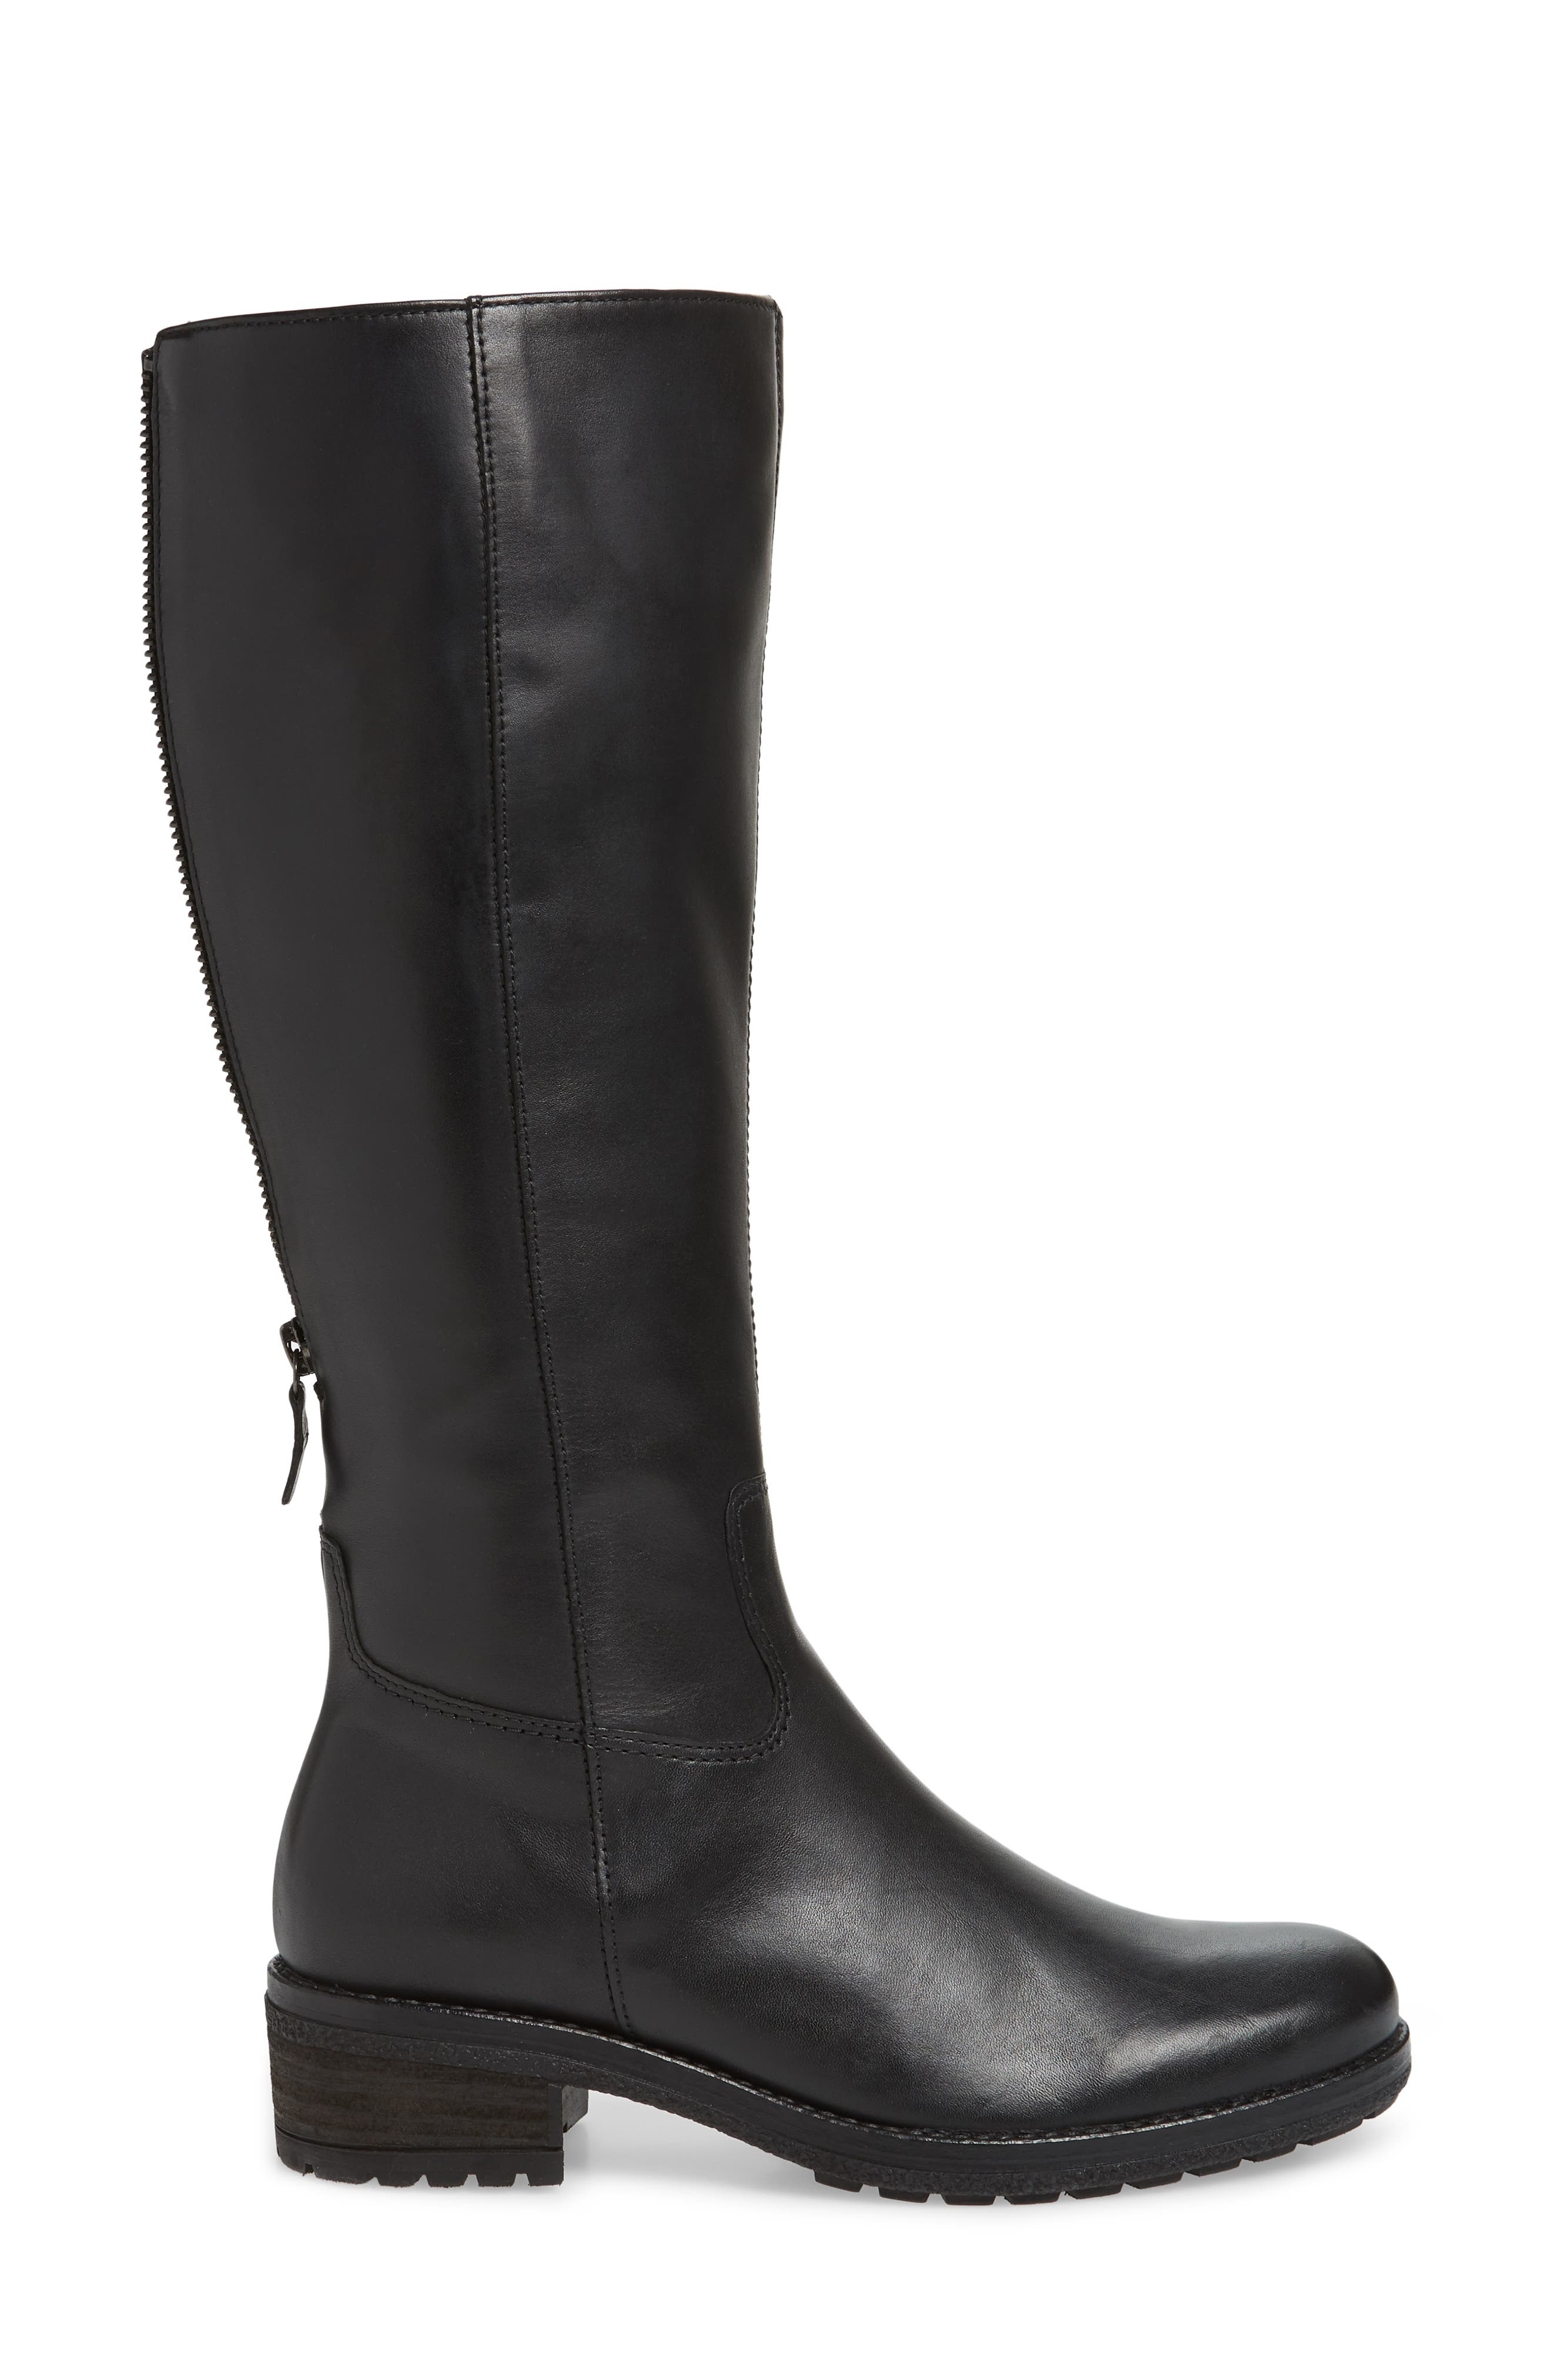 GABOR, Classic Comfort Knee High Riding Boot, Alternate thumbnail 3, color, BLACK LEATHER